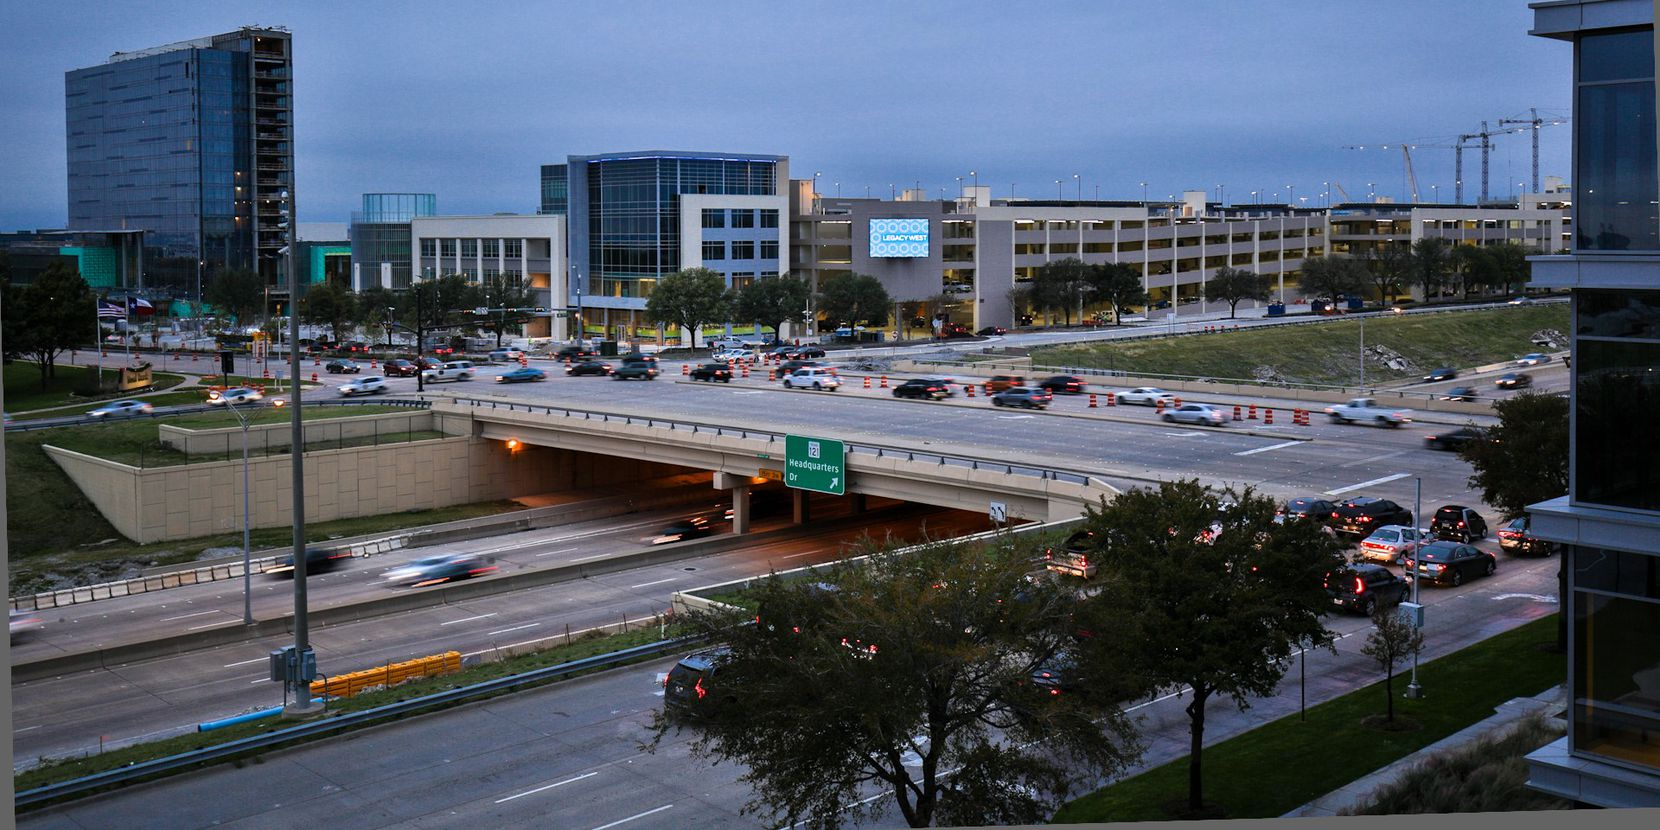 Boeing is locating its new office in the Legacy West Urban Village which is at the Dallas North Tollway and Legacy Drive.